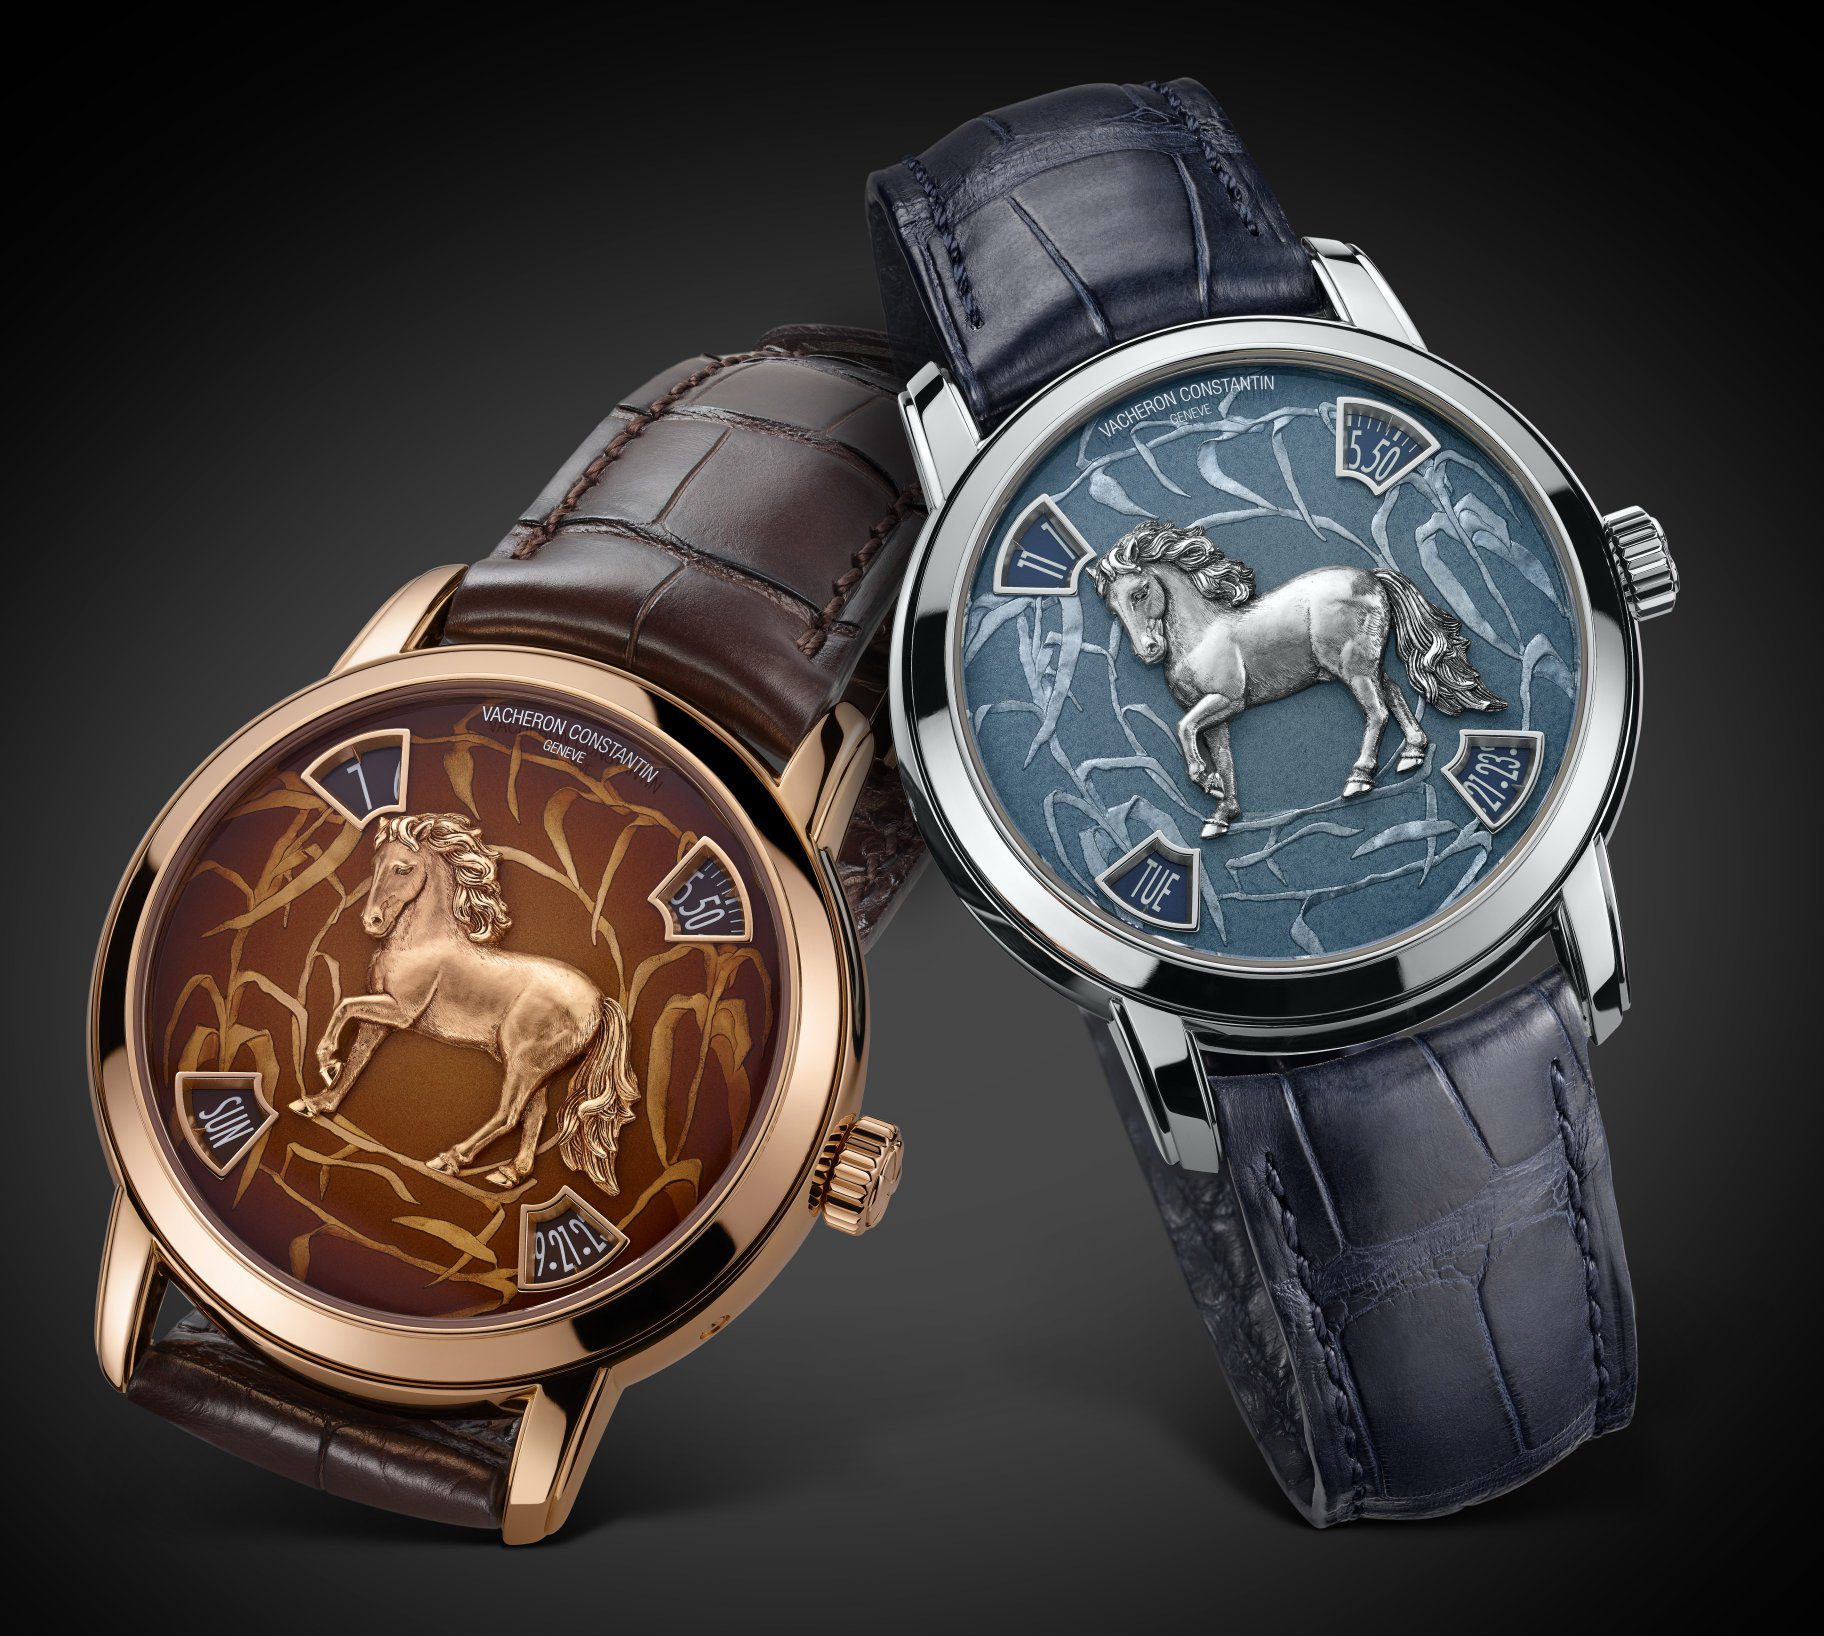 Vacheron Constantin Métiers d'Art Legend of the Chinese Zodiac